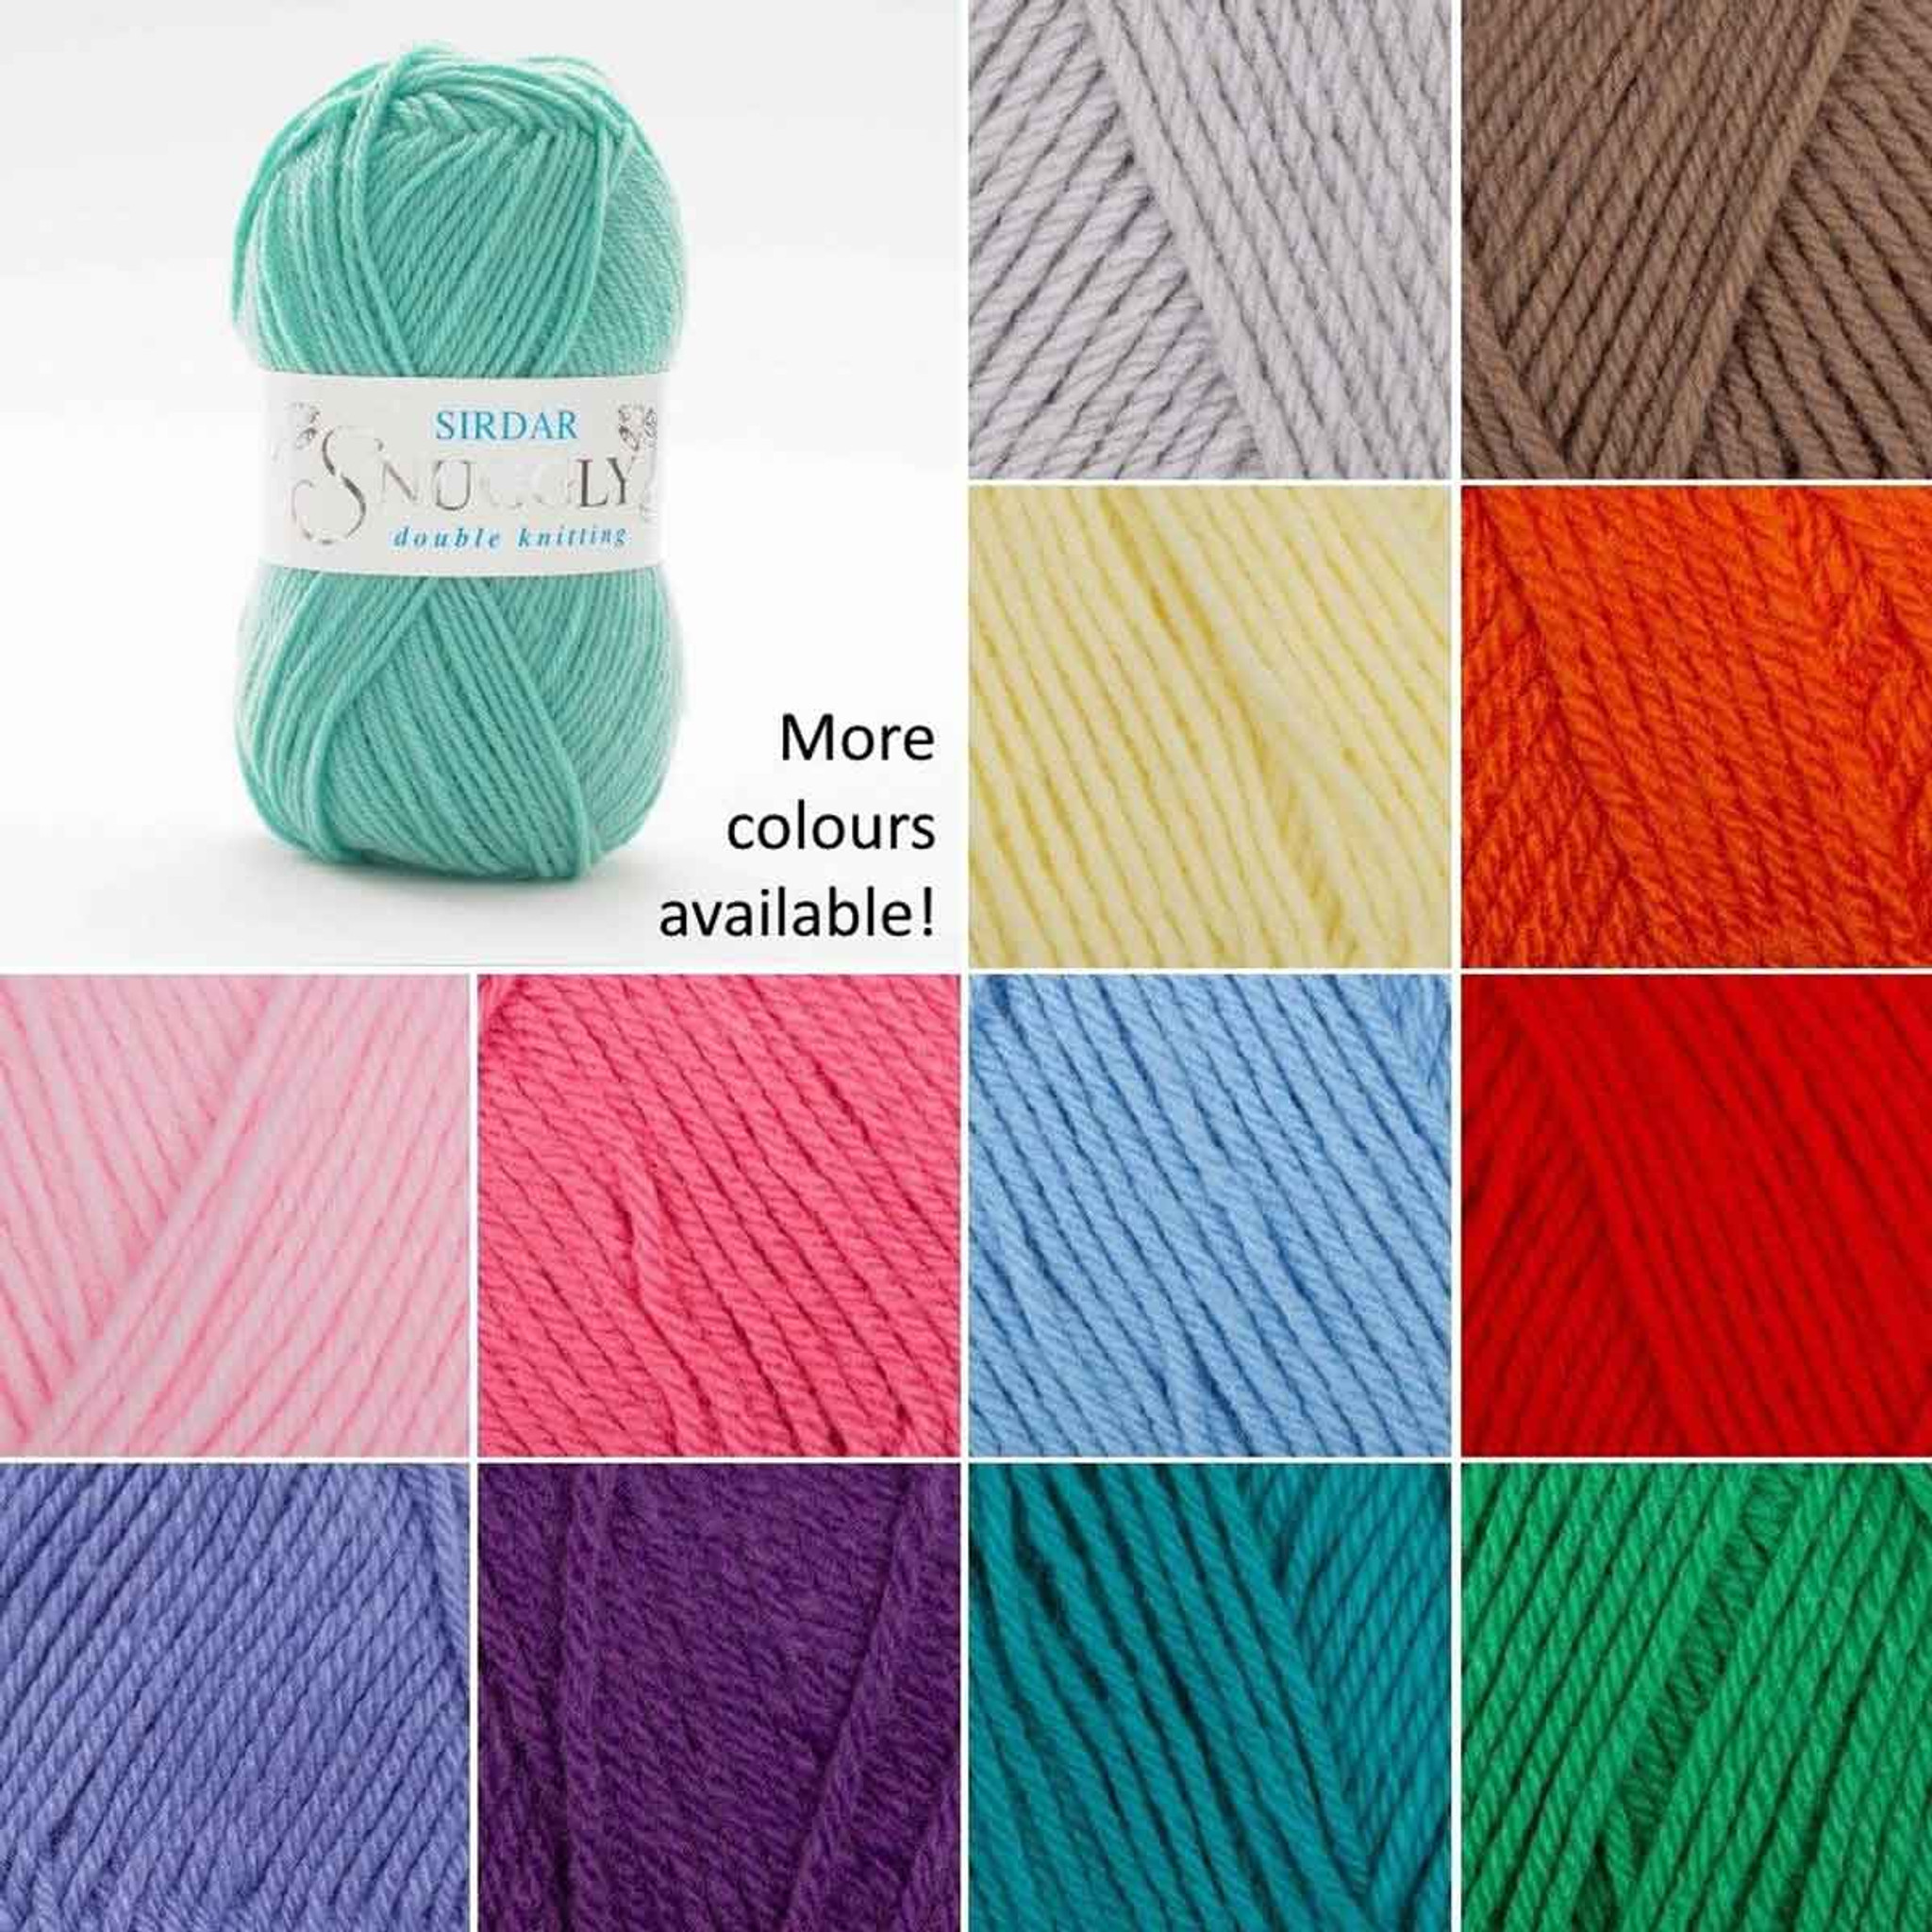 Ten 50g Balls of Sirdar Snuggly Double Knitting Wool//Yarn for Knitting//Crochet